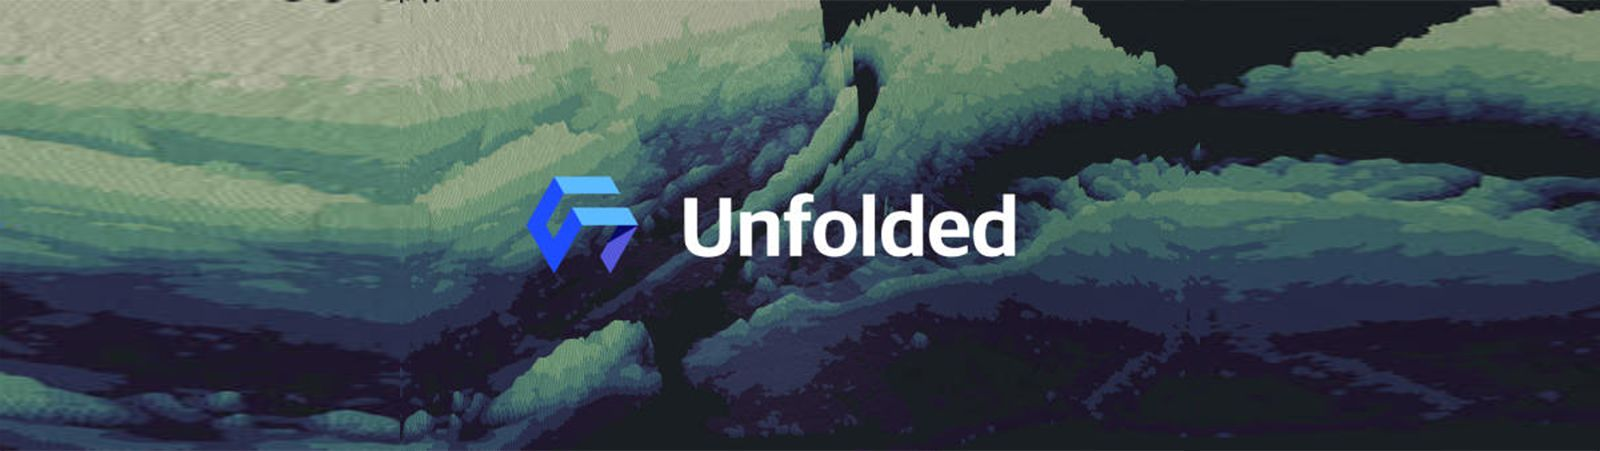 Foursquare purchases Unfolded_cabecera